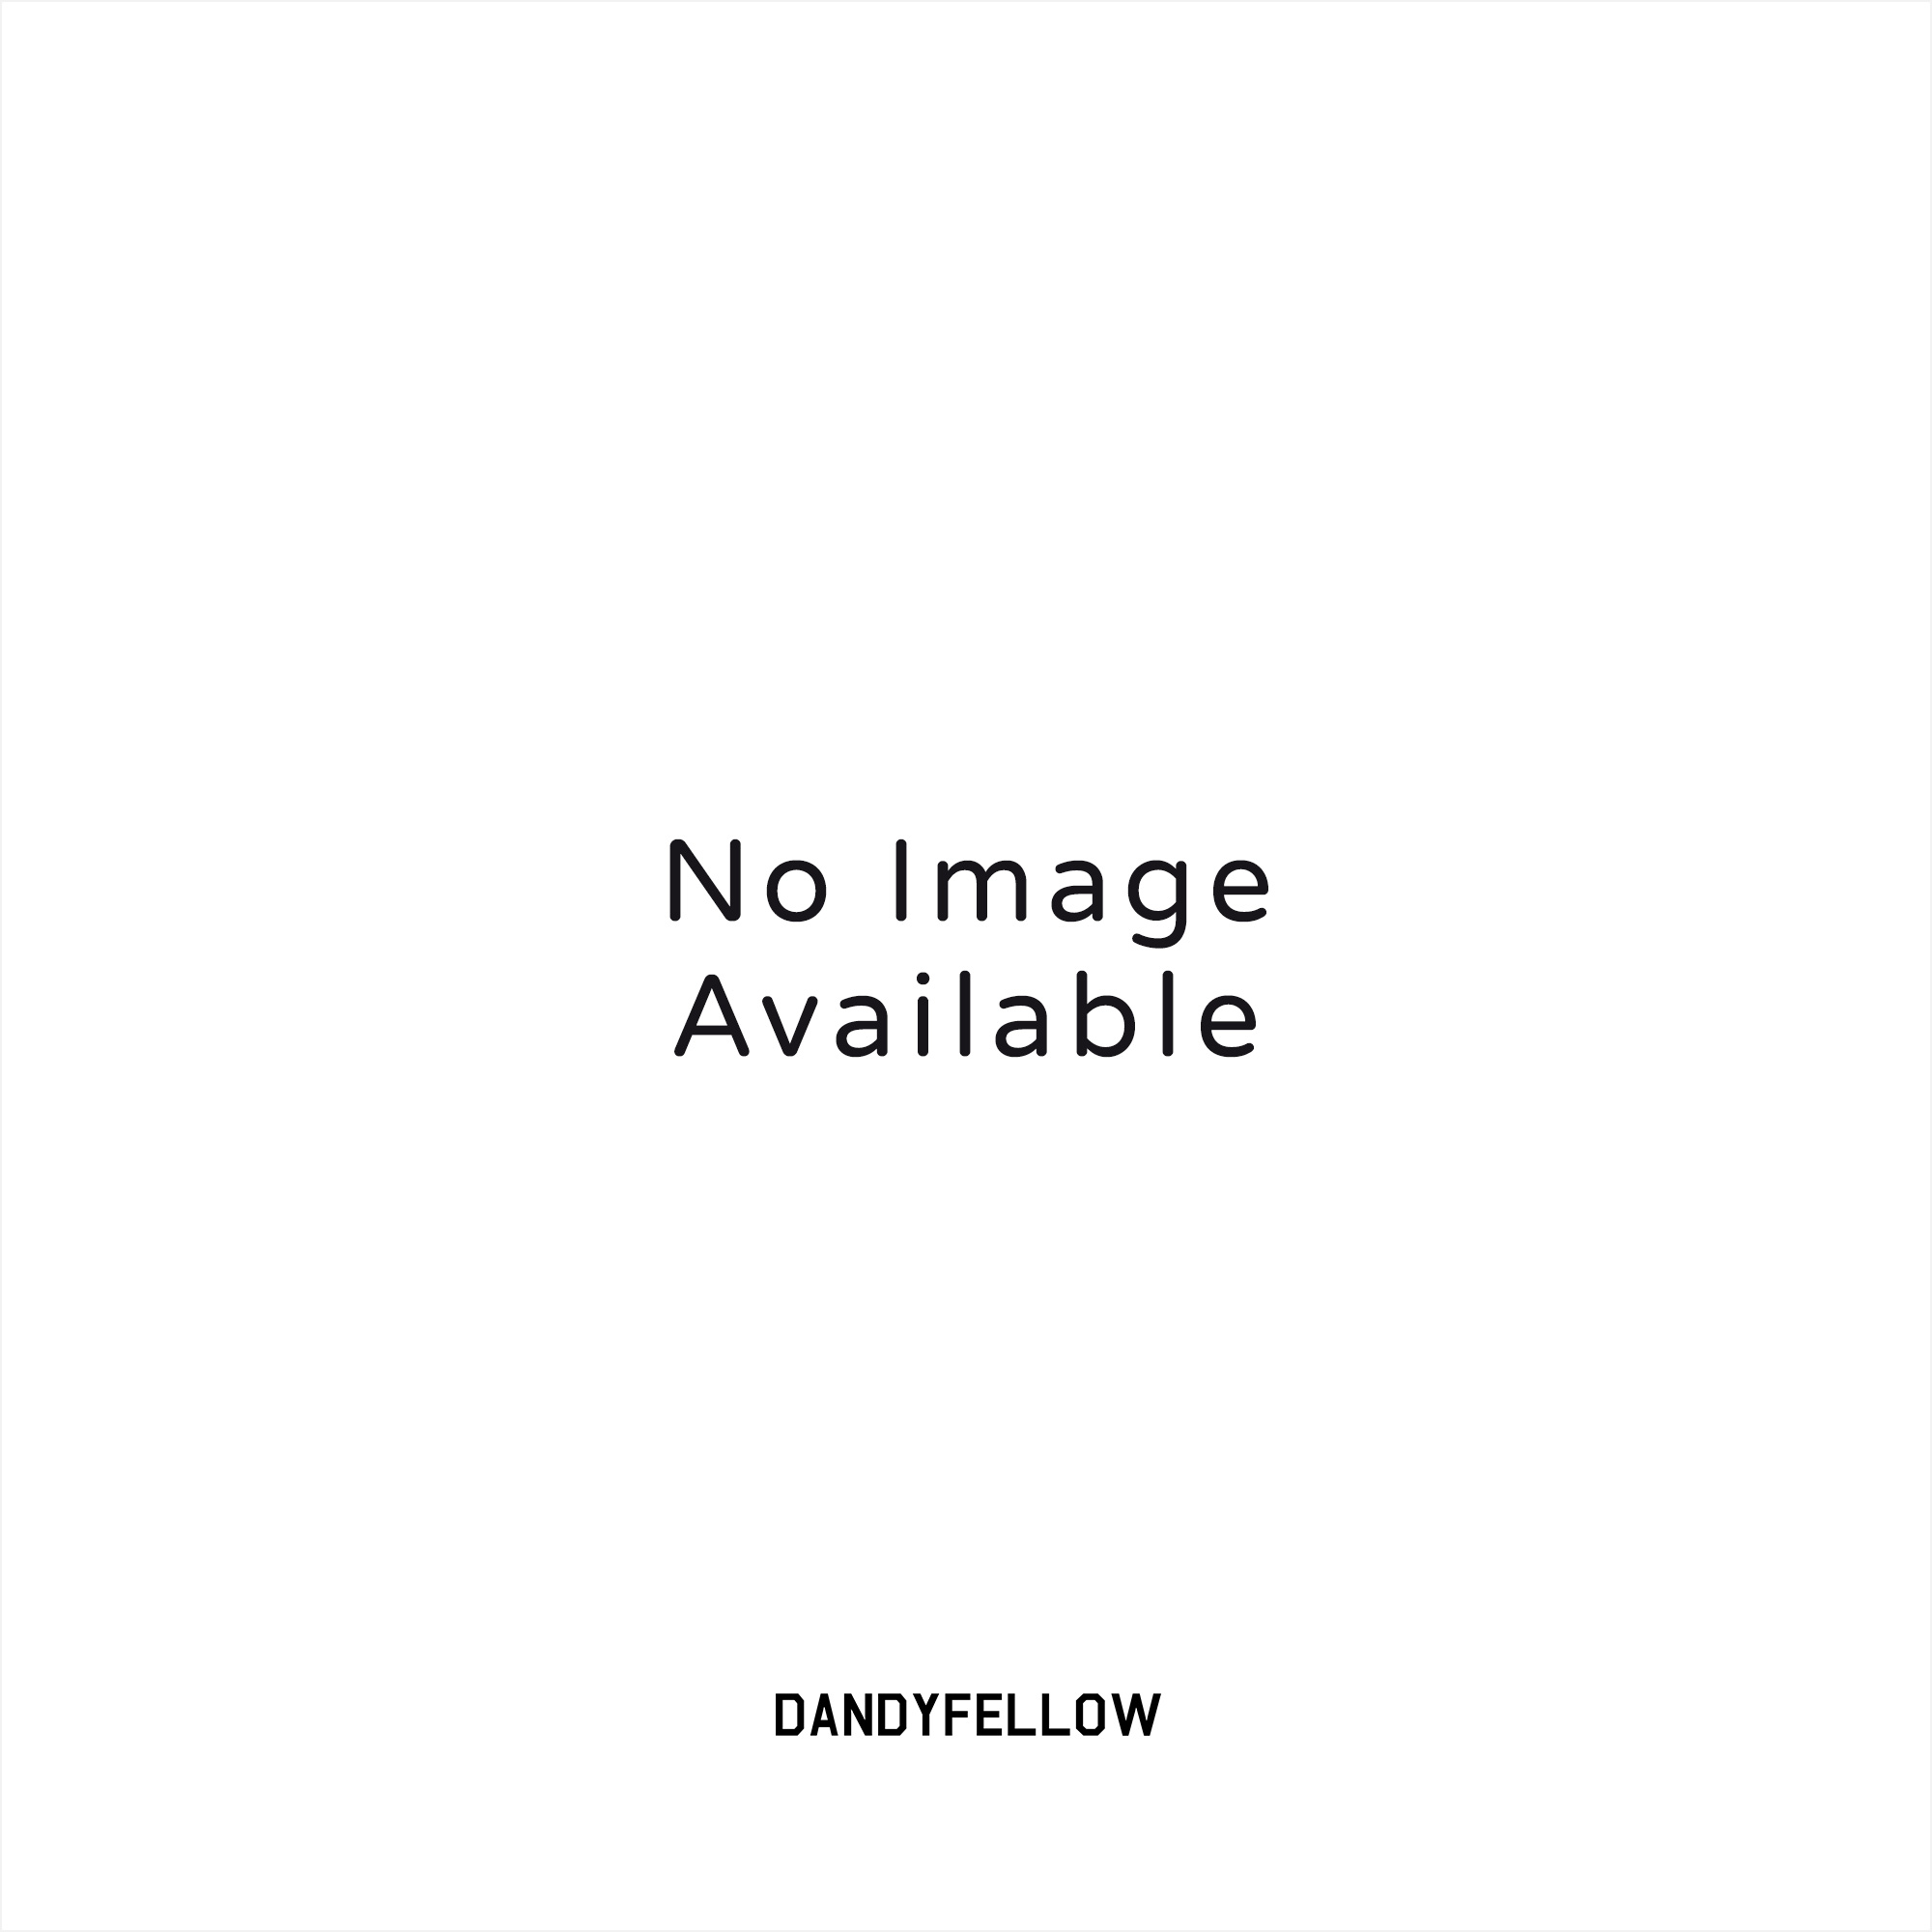 new product d5dcc d6f8d Nike Air Max 270 (Atmosphere Grey & Light Silver) sat Dandy Fellow